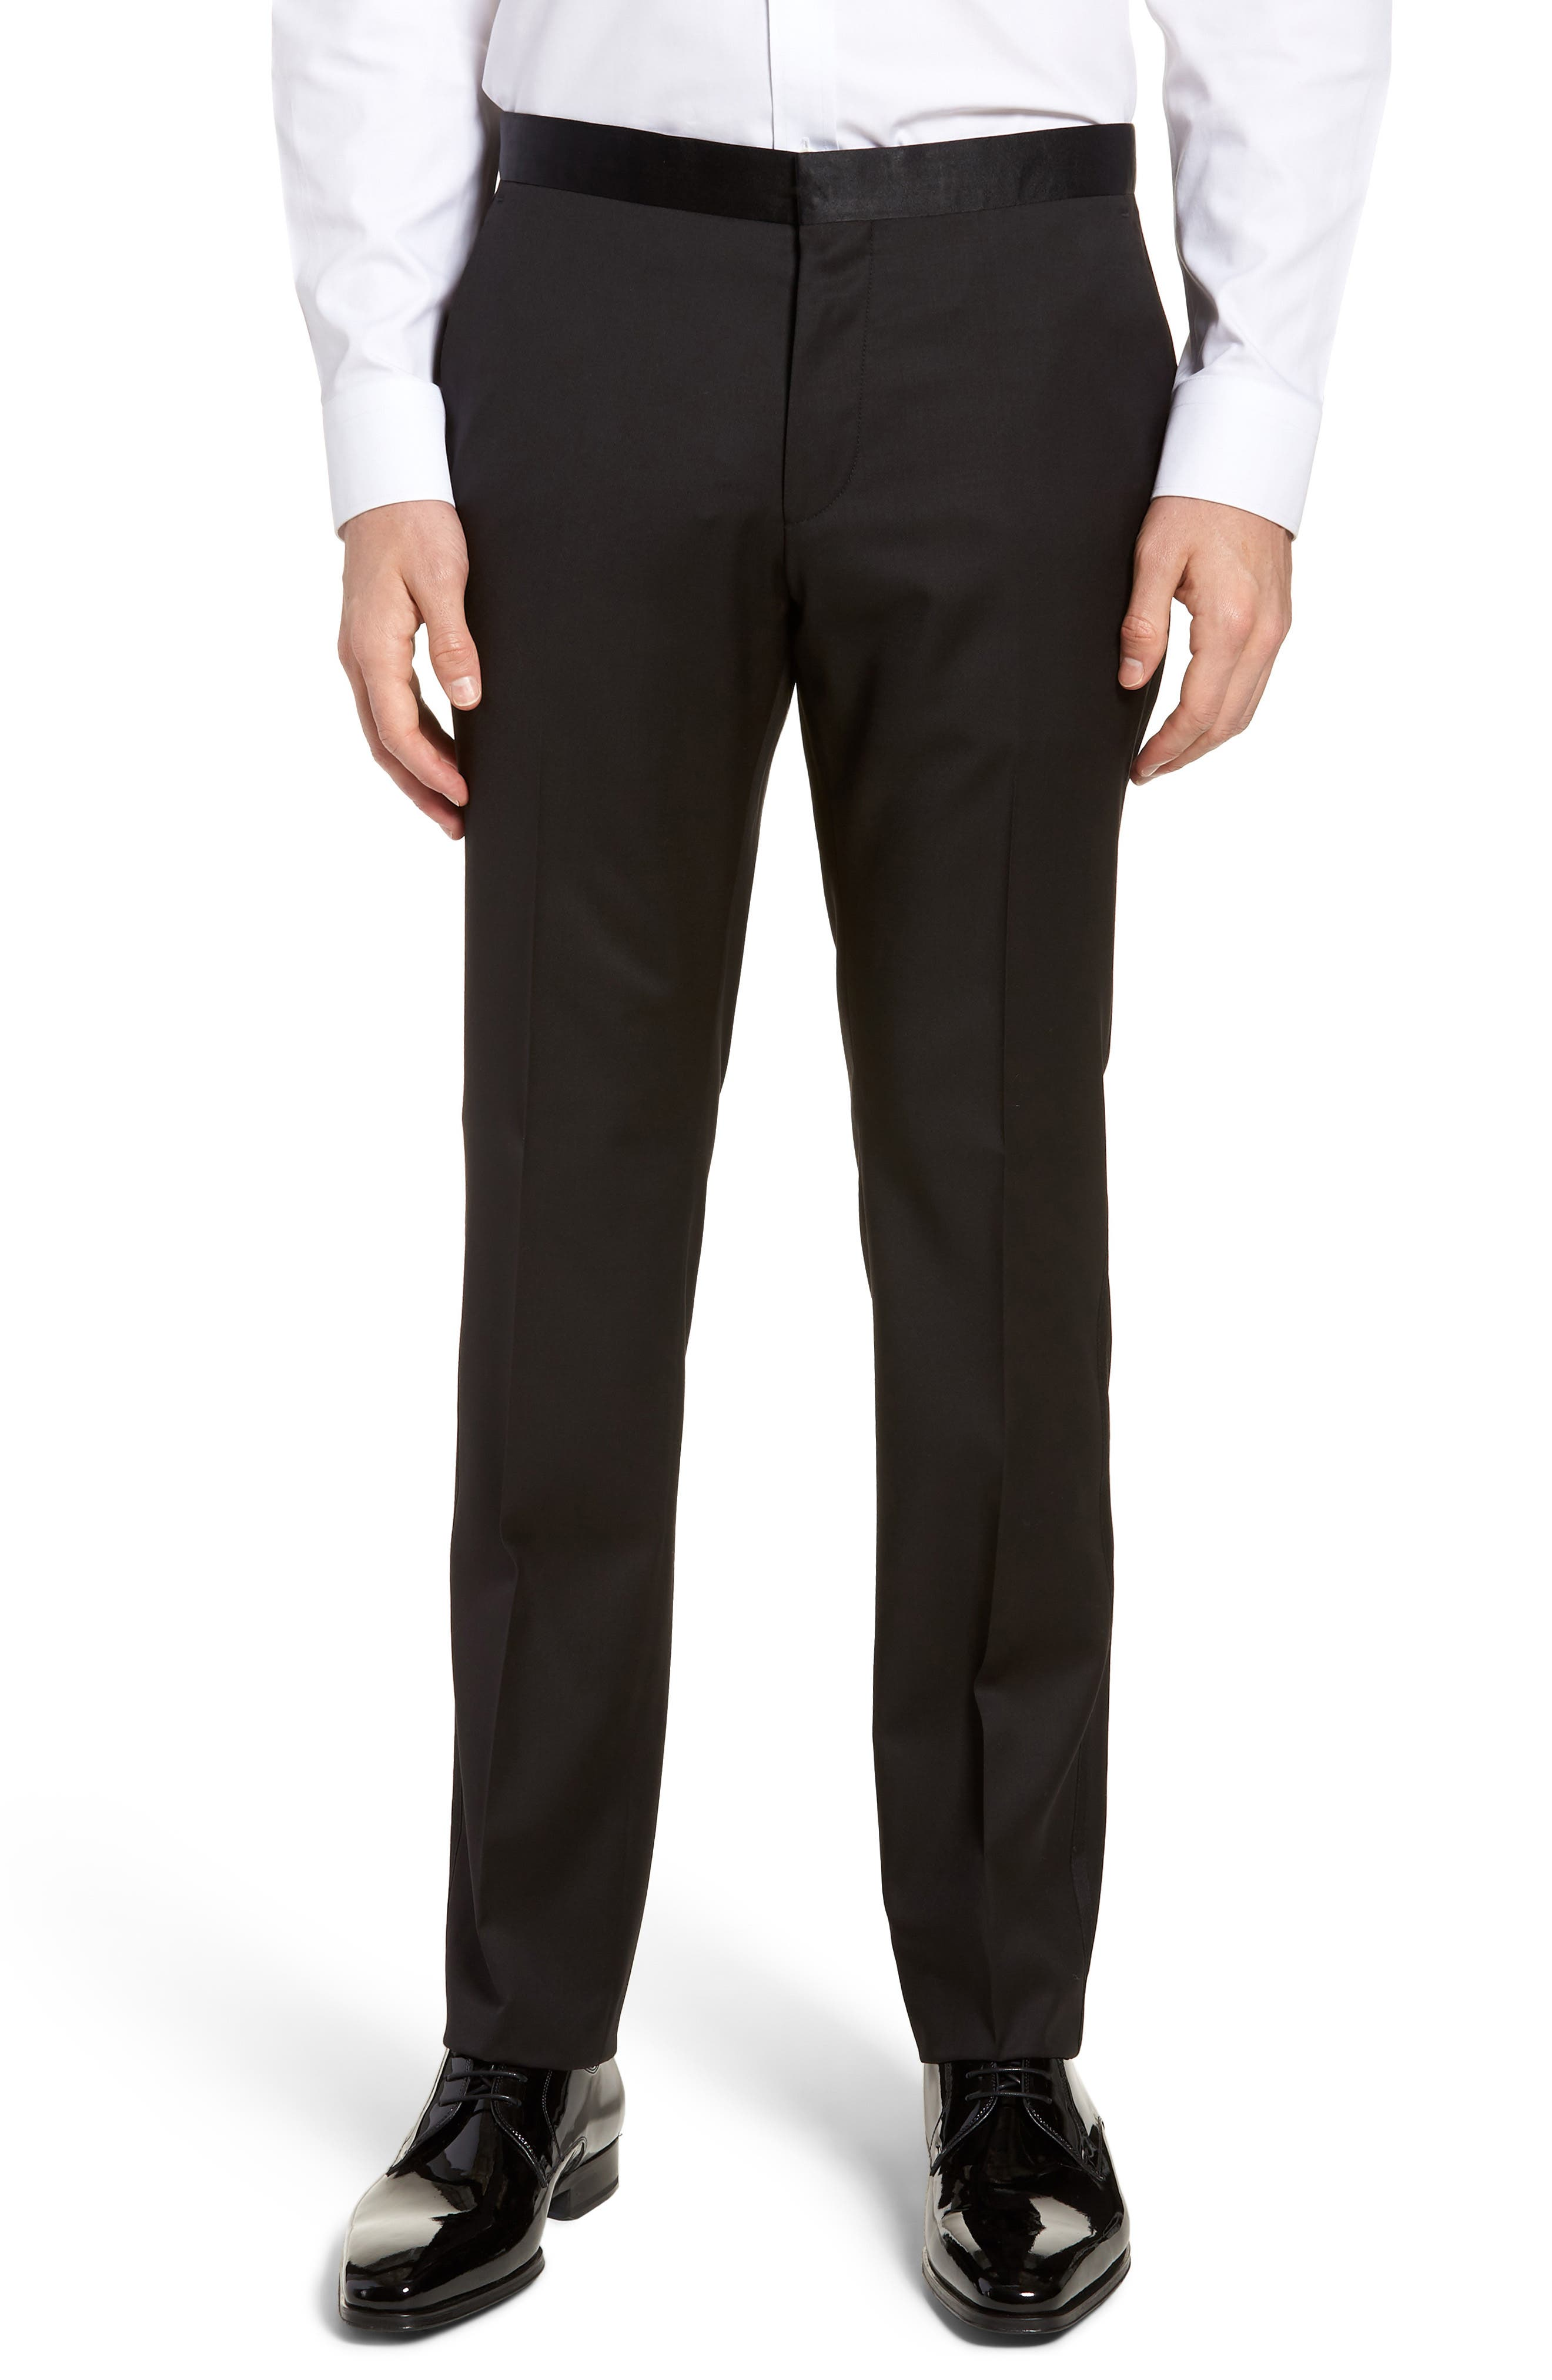 Gilan CYL Flat Front Wool Trousers,                             Main thumbnail 1, color,                             BLACK